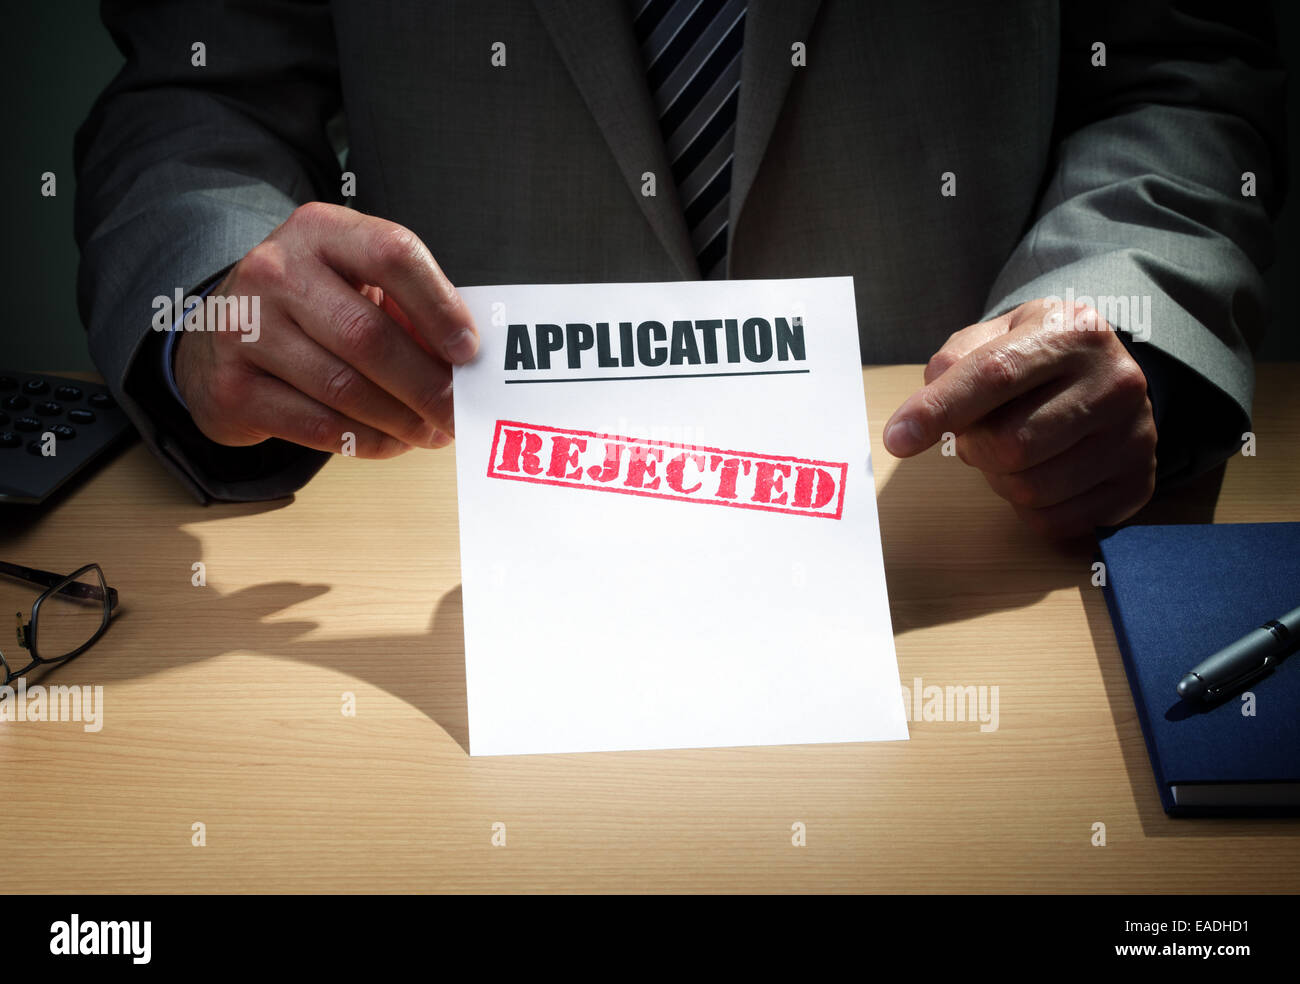 Application rejected - Stock Image